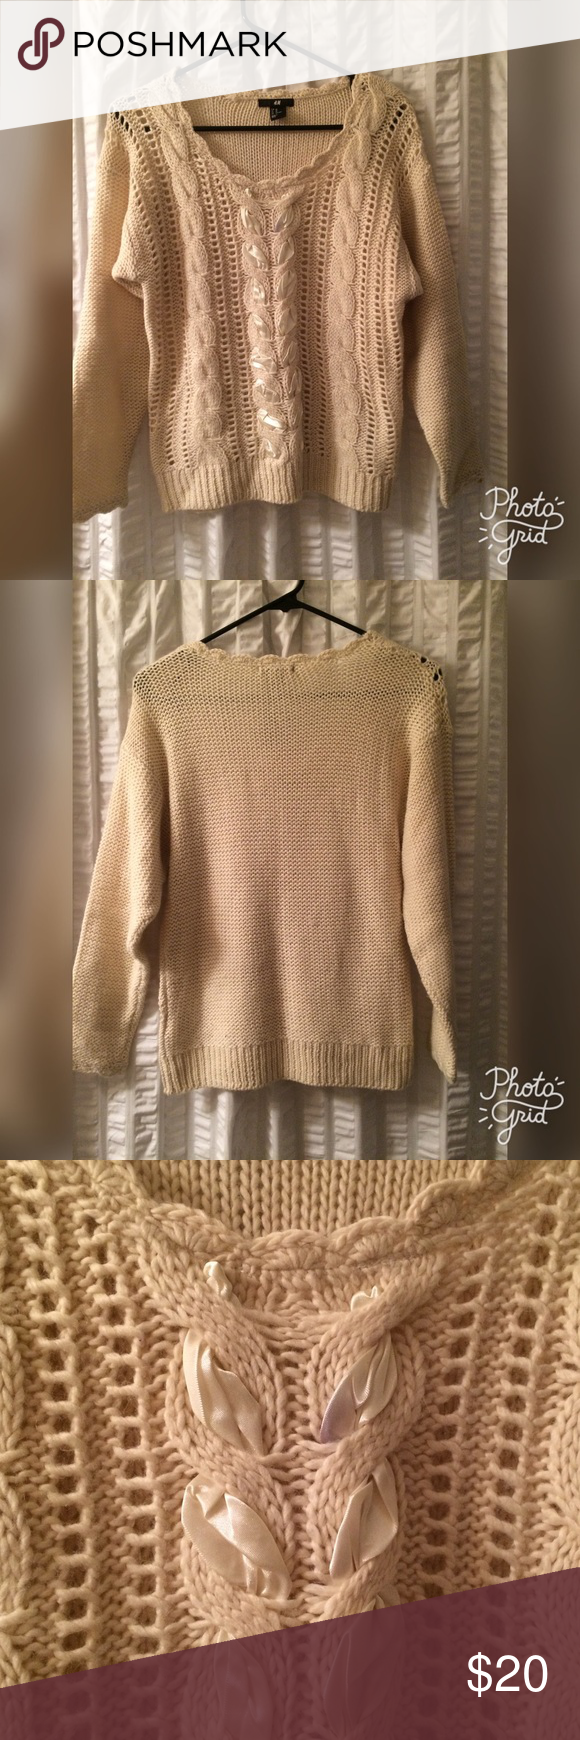 Cream color H&M sweater with ribbon detail Only worn a few times! H&M sweater has cable knit and ribbon detail. Great for chilly nights or the holiday season! Please don't hesitate to ask questions or make an offer, prices are not firm! Happy Poshing! H&M Sweaters Crew & Scoop Necks